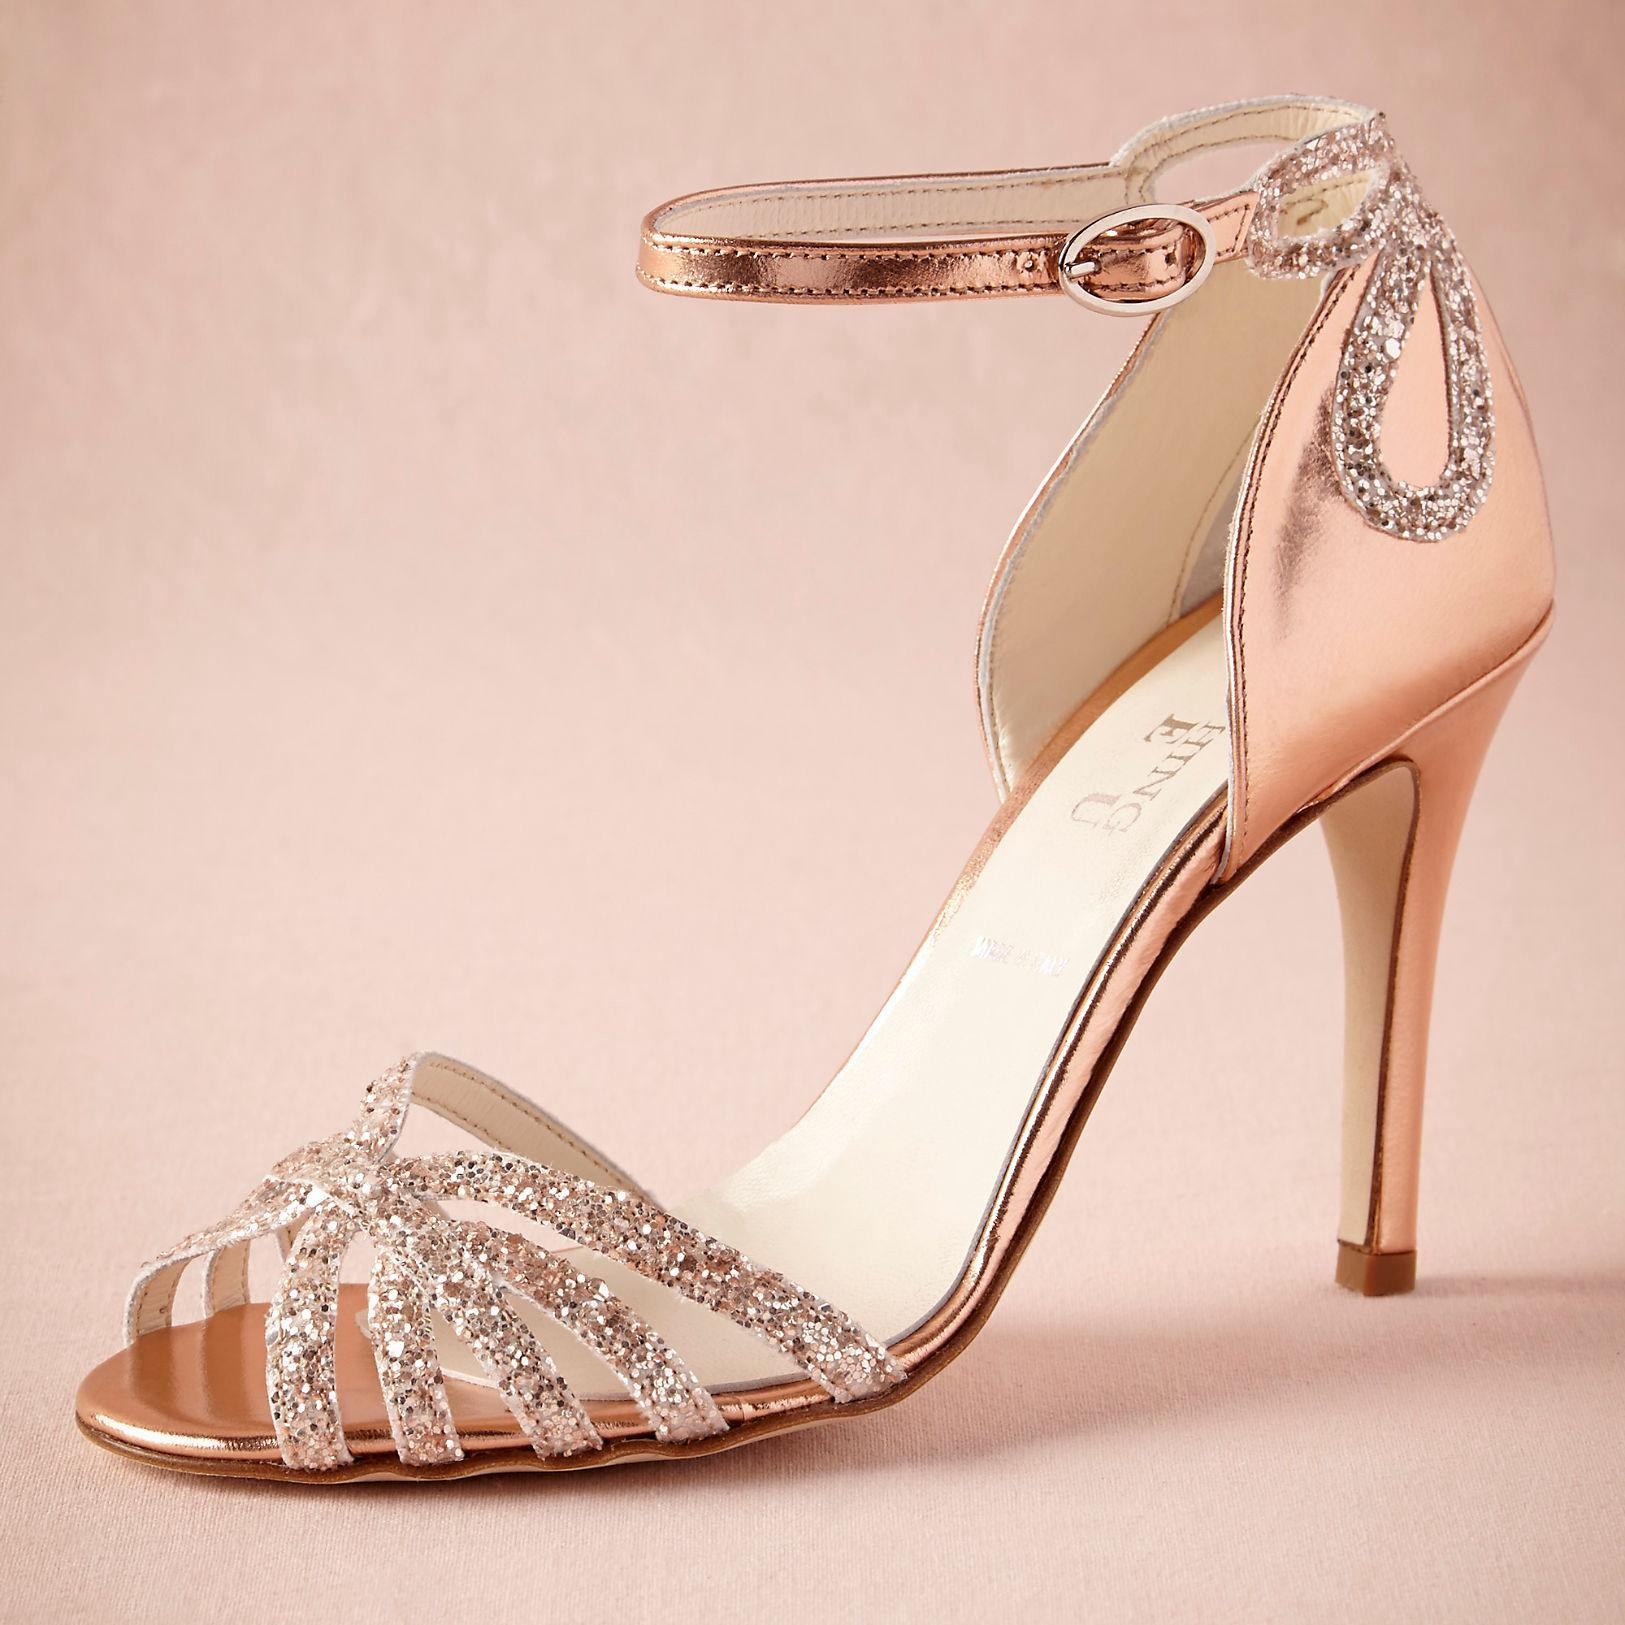 Rose gold glittered heel real wedding shoes pumps sandals gold leather buckle closure glitter party dance high wrapped heels women sandals